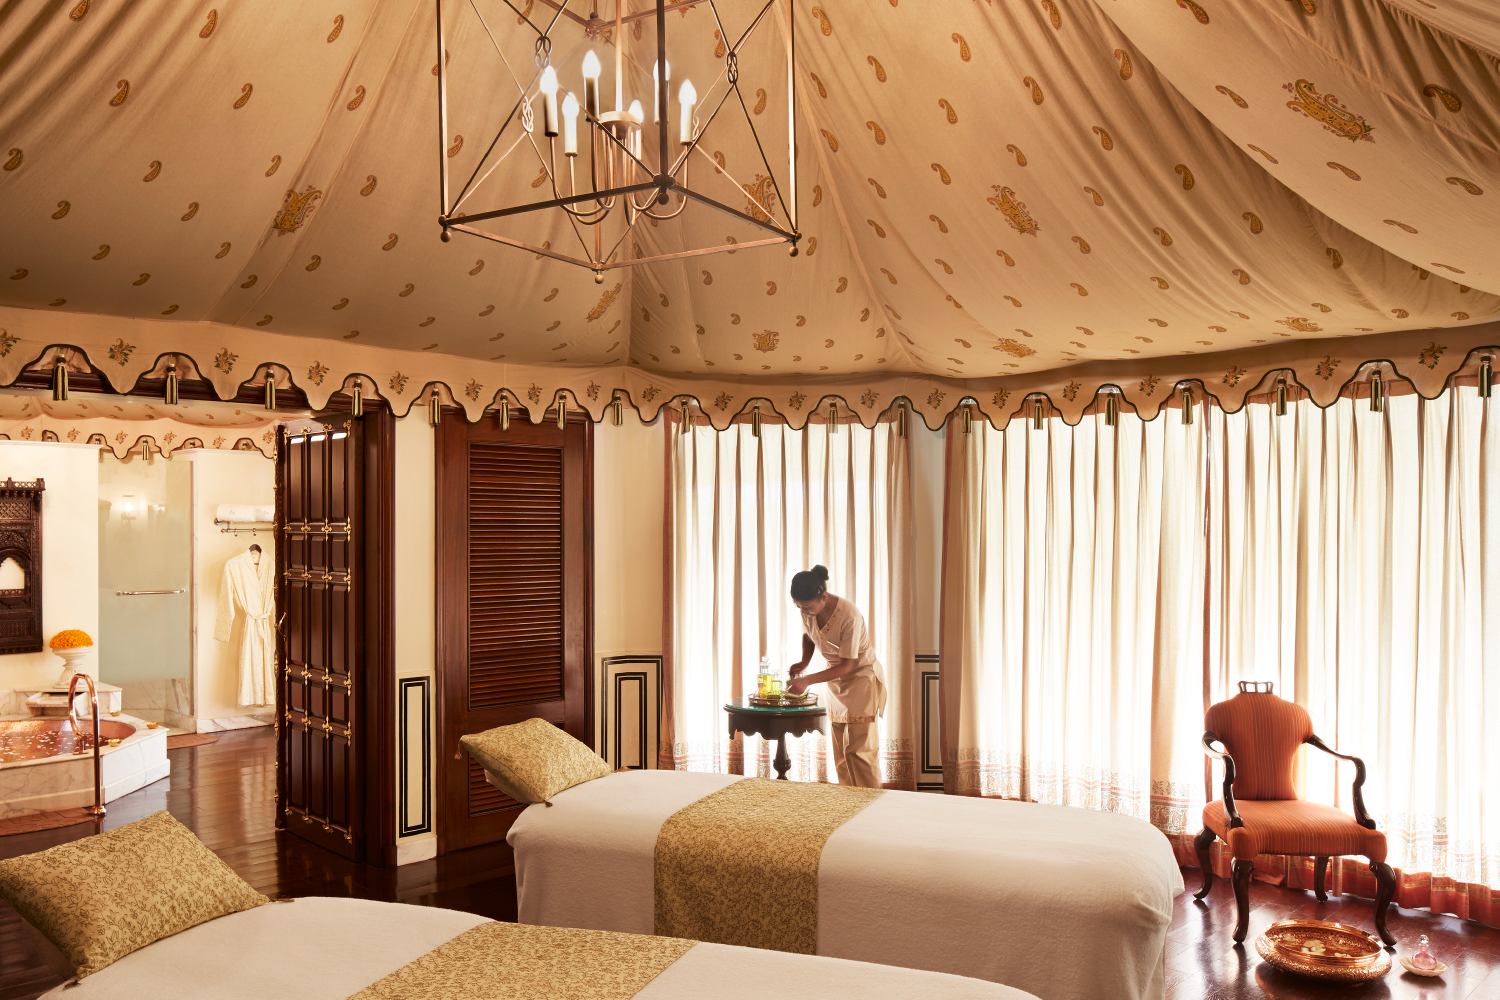 Stay at a magnificent palace, an 1835 structure built for a royalty, later a hunting lodge and a Maharajah's residence